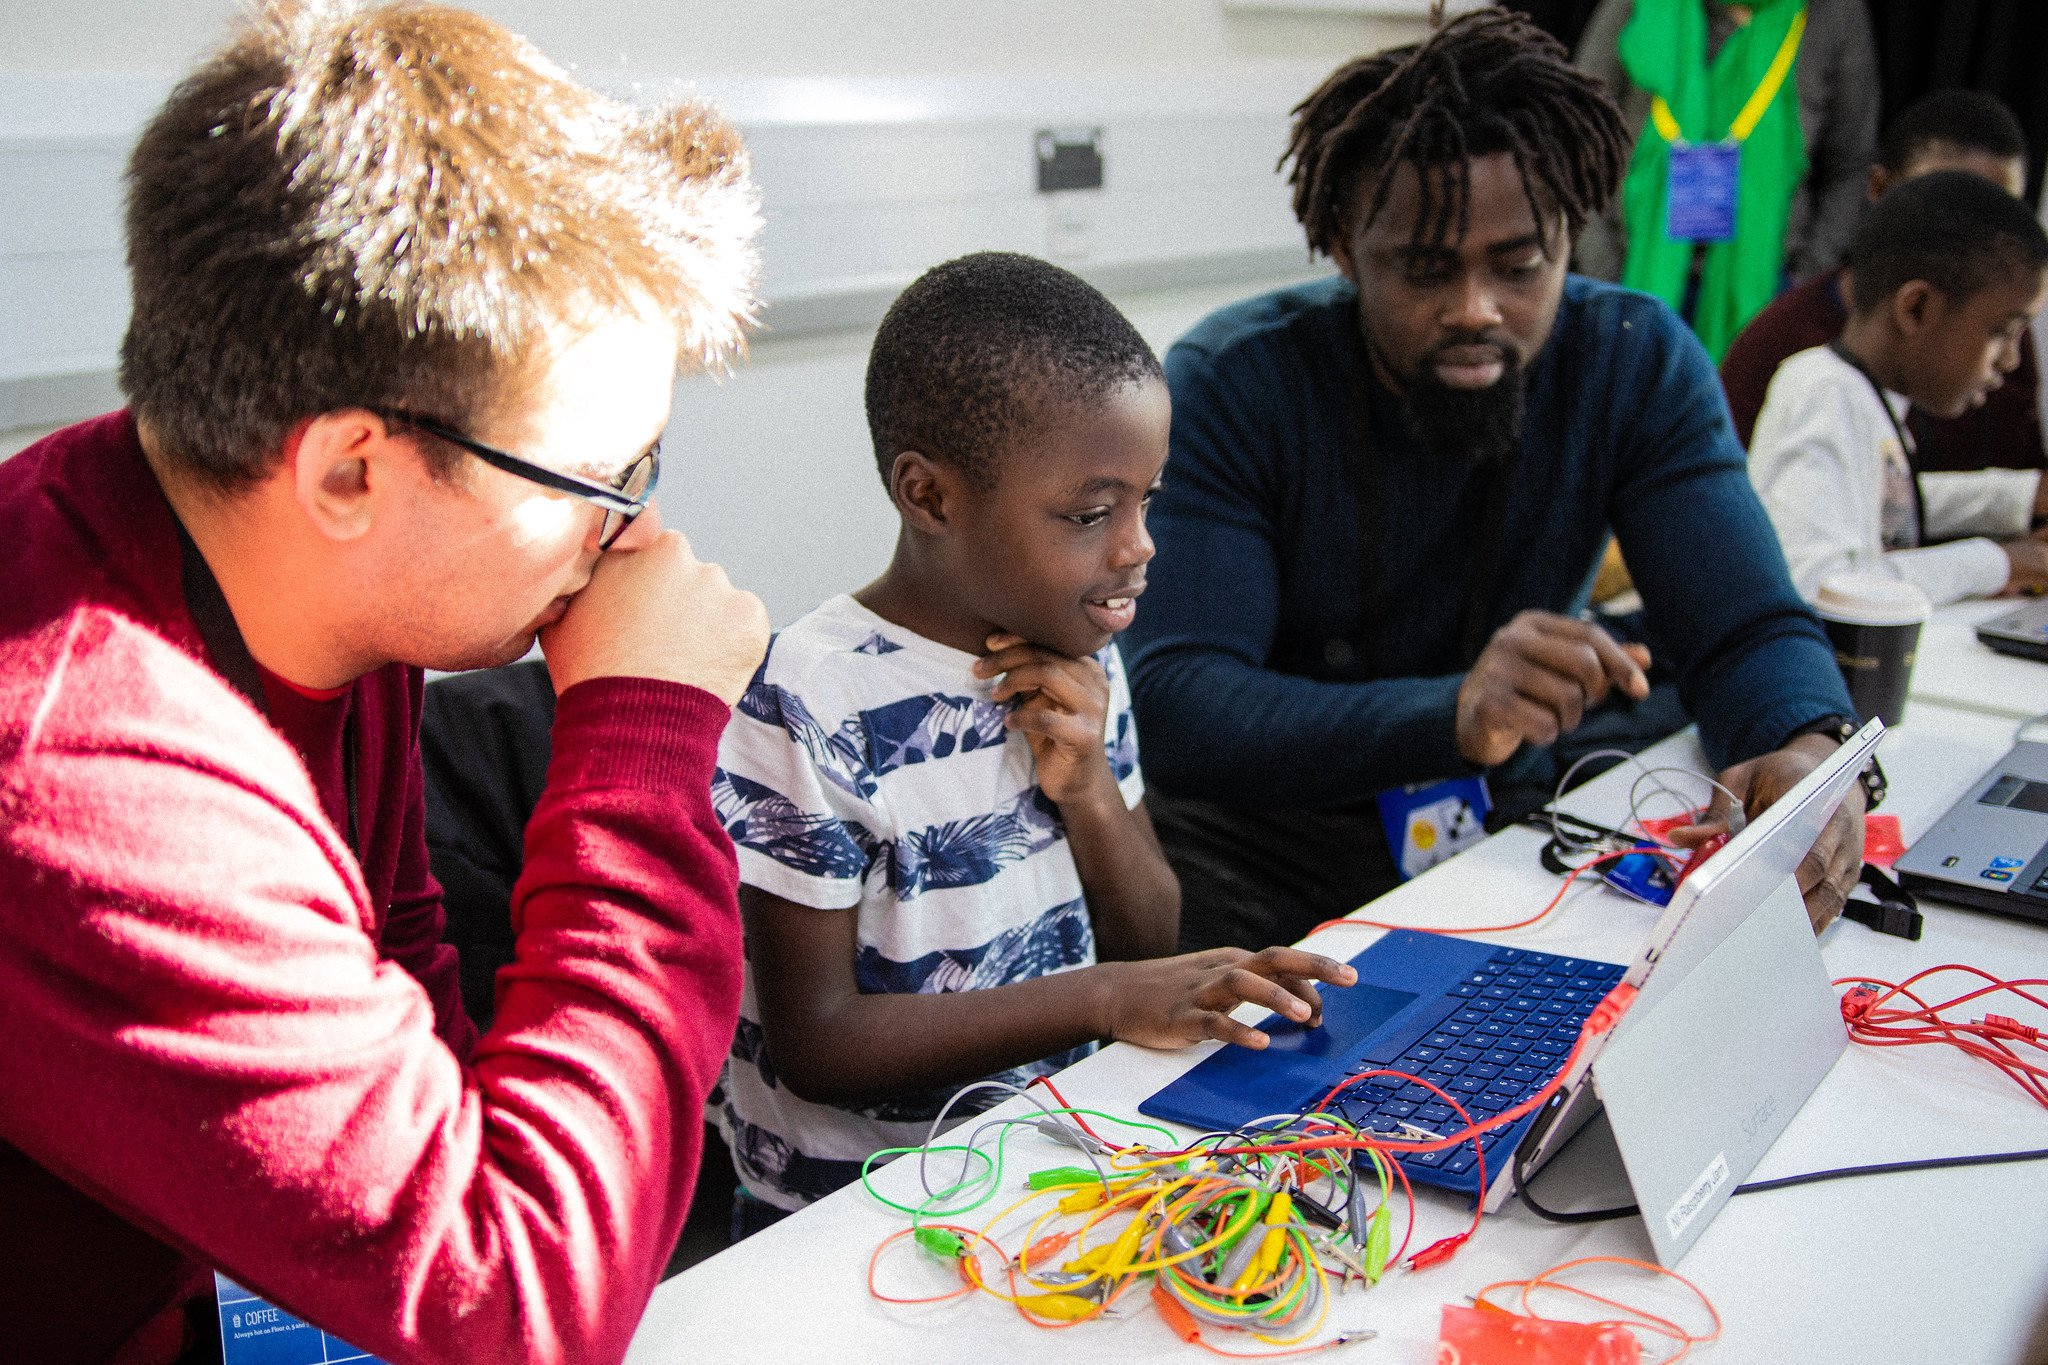 Two adults at a MozFest Youth Zone session help a young participant work on a computer project.